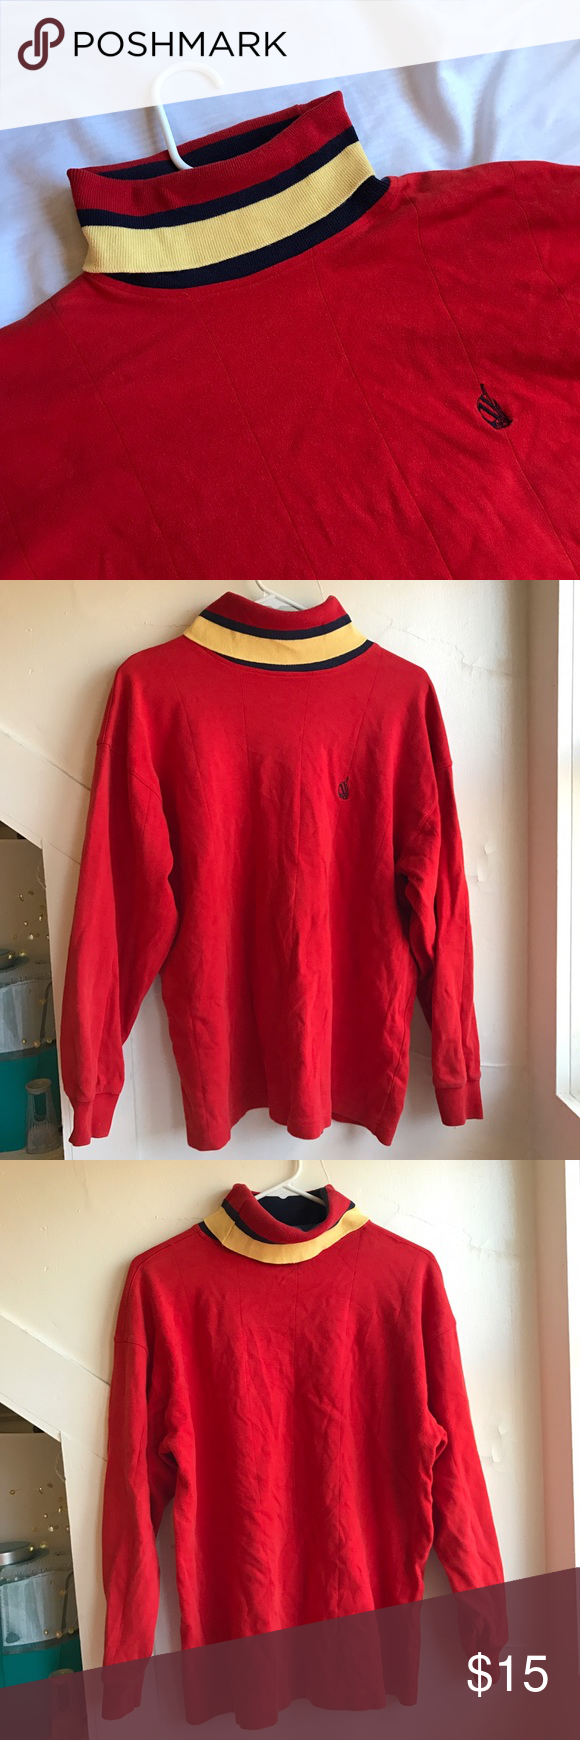 Vintage 90s Turtleneck great condition, no flaws or stains Vintage Sweaters Cowl & Turtlenecks